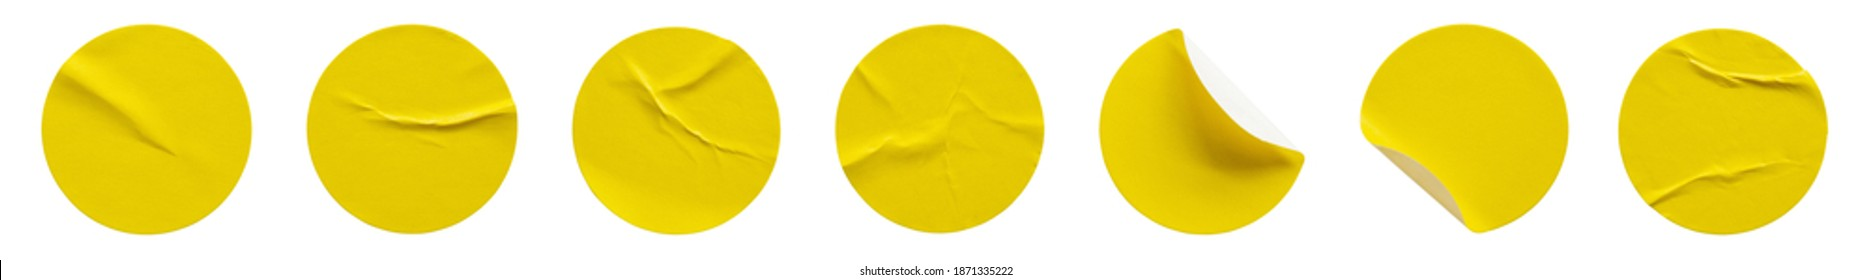 Yellow round paper sticker label isolated on white background